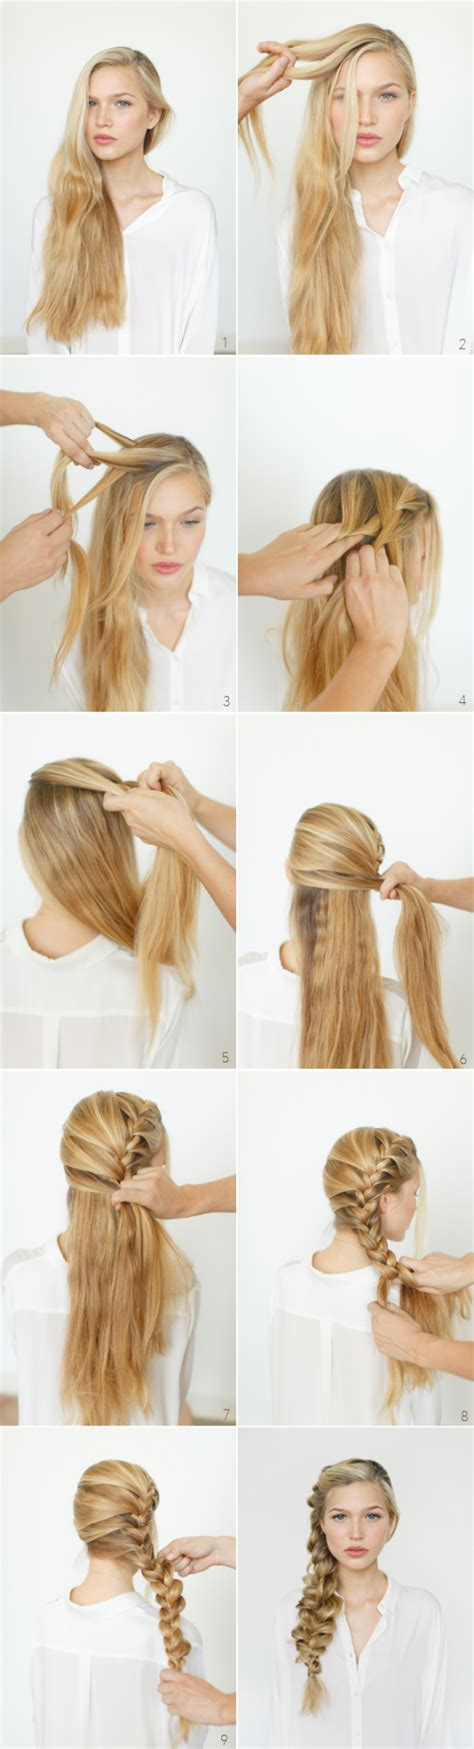 easy step by step hairstyles do by own at any time 18 easy step by step tutorials for perfect hairstyles